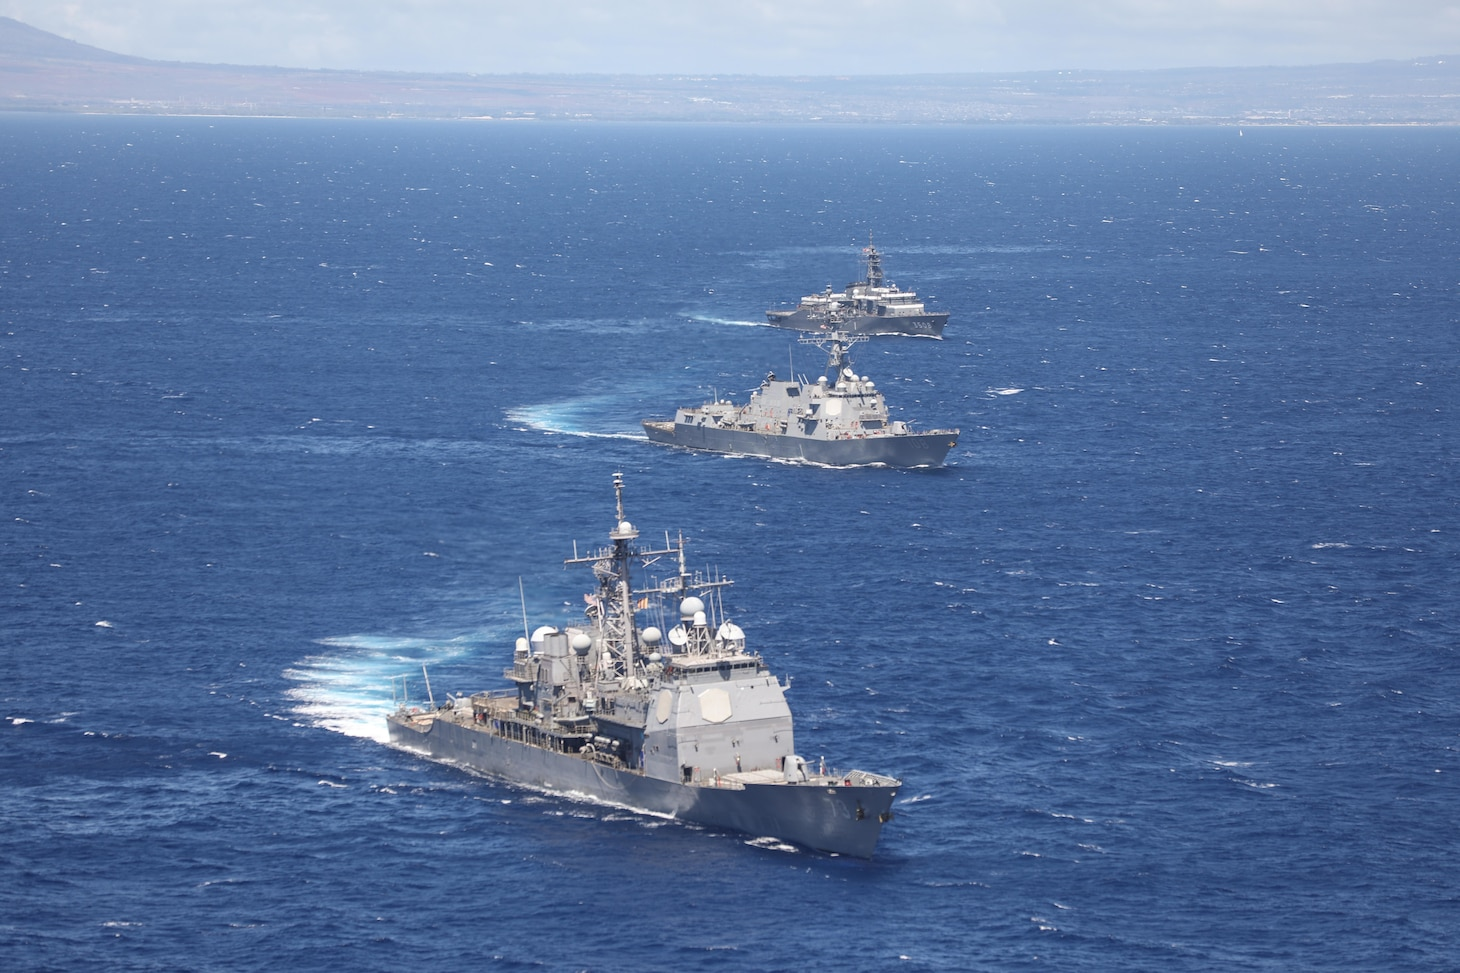 PACIFIC OCEAN (Oct. 4, 2021) Front to back, Ticonderoga-class guided-missile cruiser USS Port Royal (CG 73), Arleigh-Burke class guided-missile destroyer USS Wayne E. Meyer (DDG 108) and Japan Maritime Self-Defense Force (JMSDF) ship JS Kashima (TV-3508) participated in a Cooperative Deployment (CODEP). Cooperative Deployments are designed to increase operational readiness and interoperability between participating ships, increase planning and communication abilities, and improve complex maritime operations efficiency and effectiveness. (U.S. Navy photo by Mass Communication Specialist 2nd Class Aja Bleu Jackson)